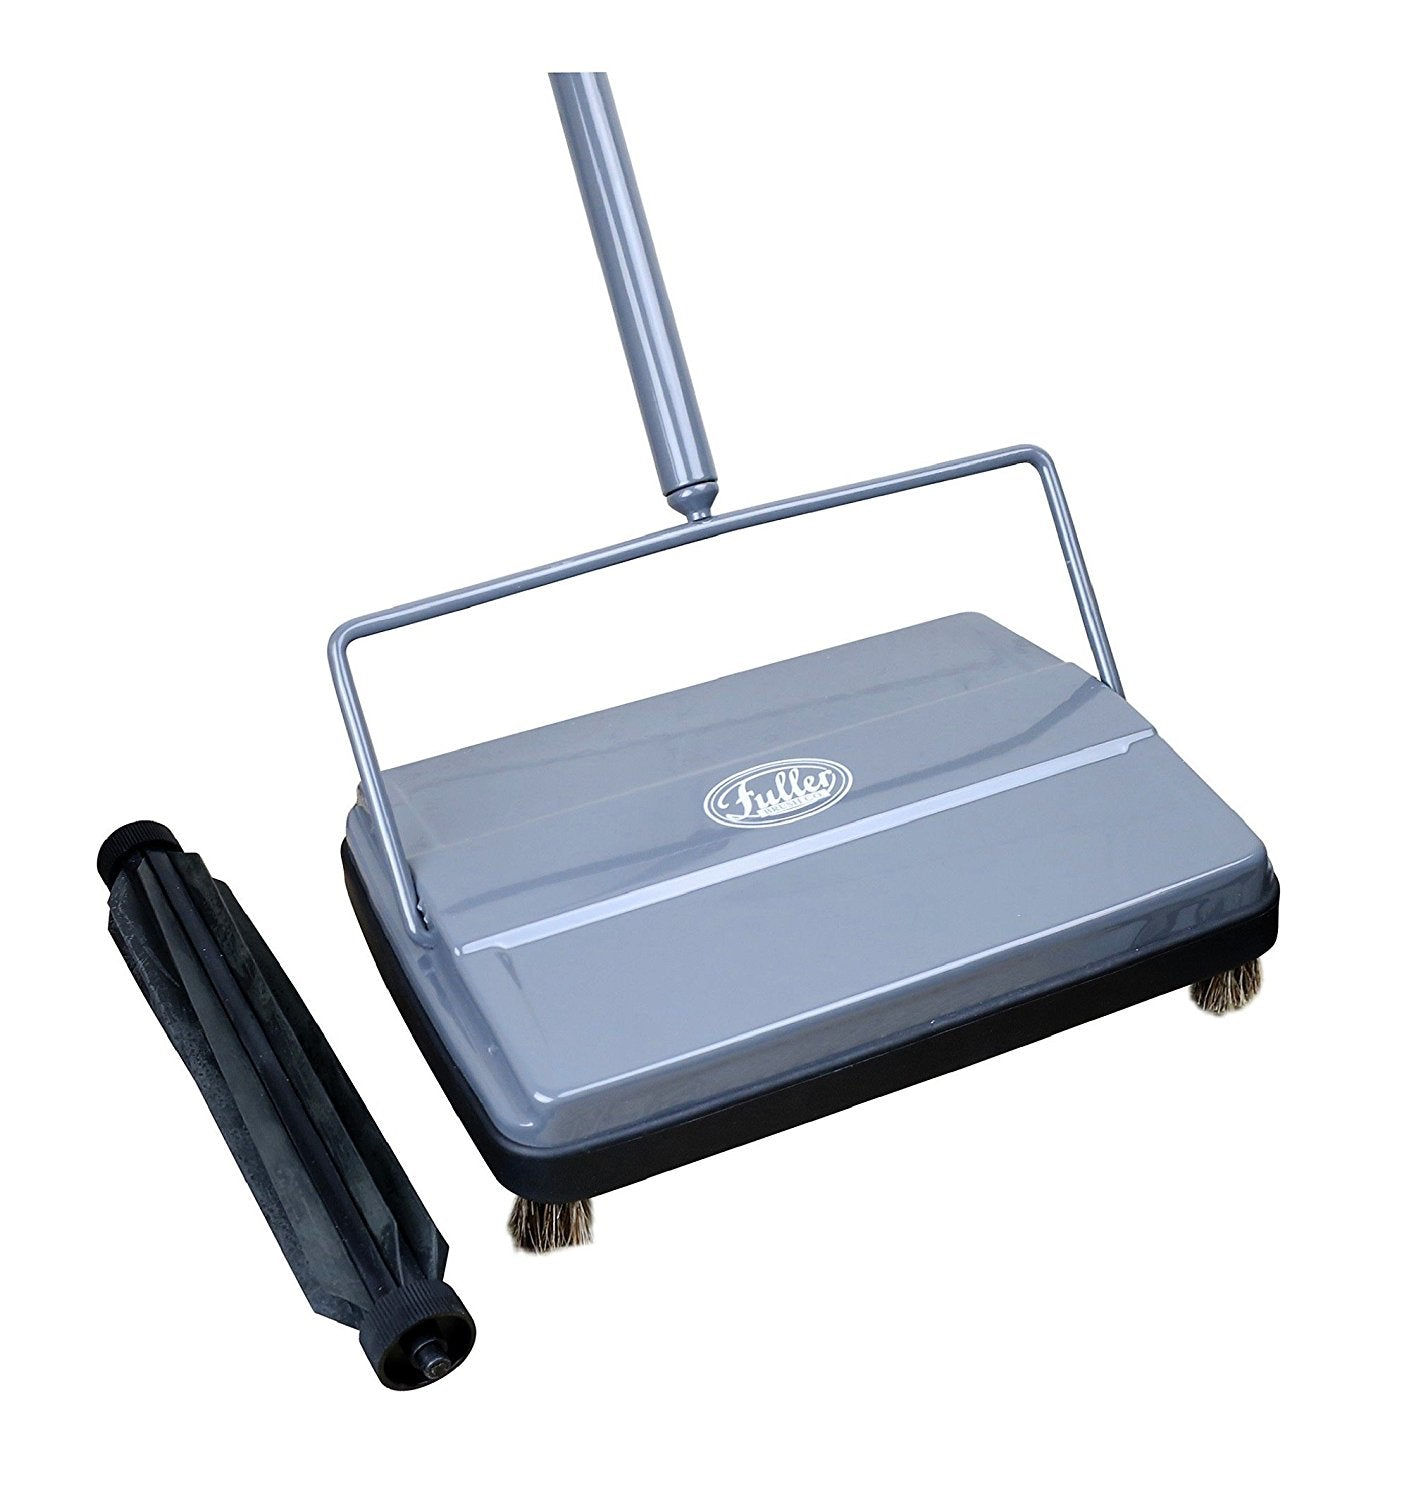 Electrostatic Carpet & Floor Sweeper - Extra Vinyl Blade - Gray